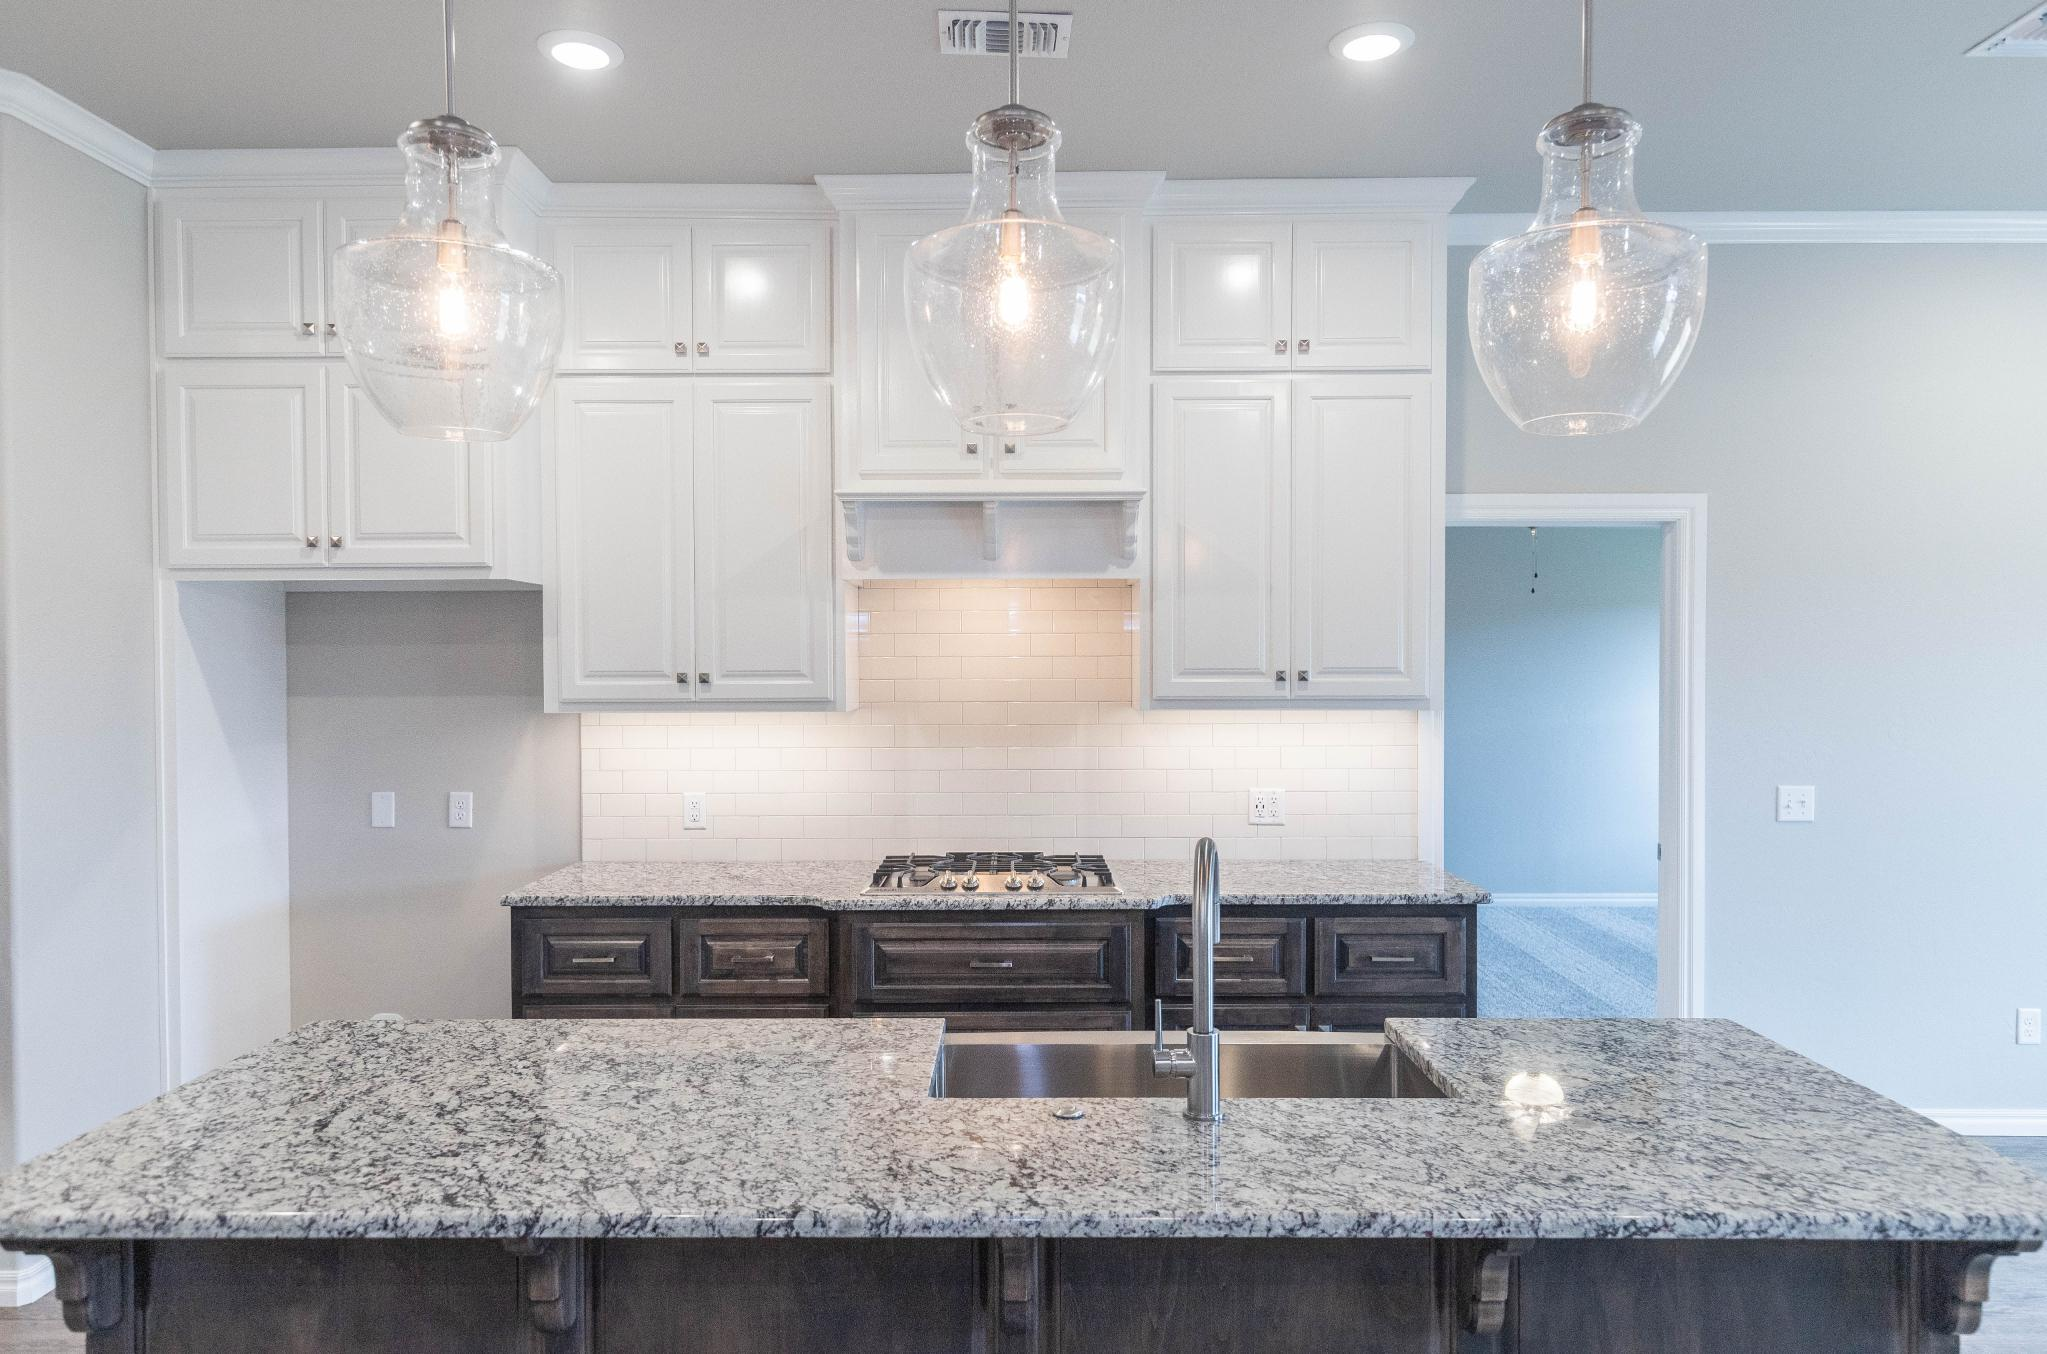 Kitchen featured in the Blue Spruce PLUS By Homes By Taber in Oklahoma City, OK